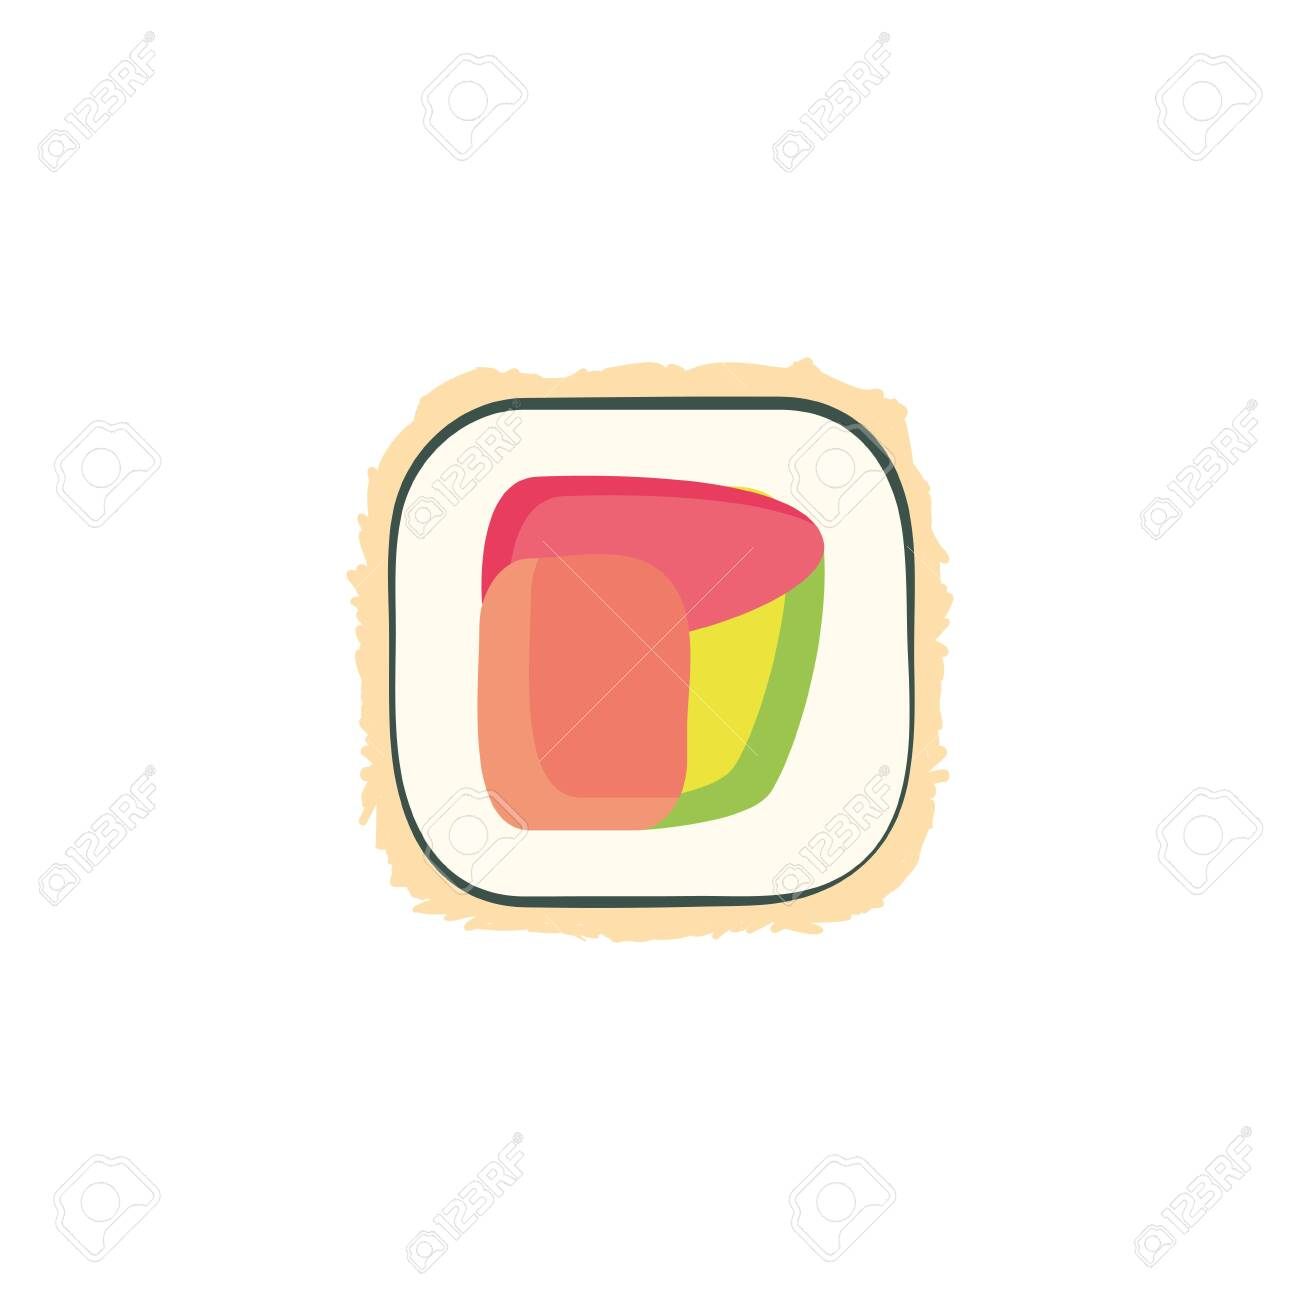 sushi icon design, Eat food restaurant menu dinner lunch cooking and meal theme Vector illustration - 135001372